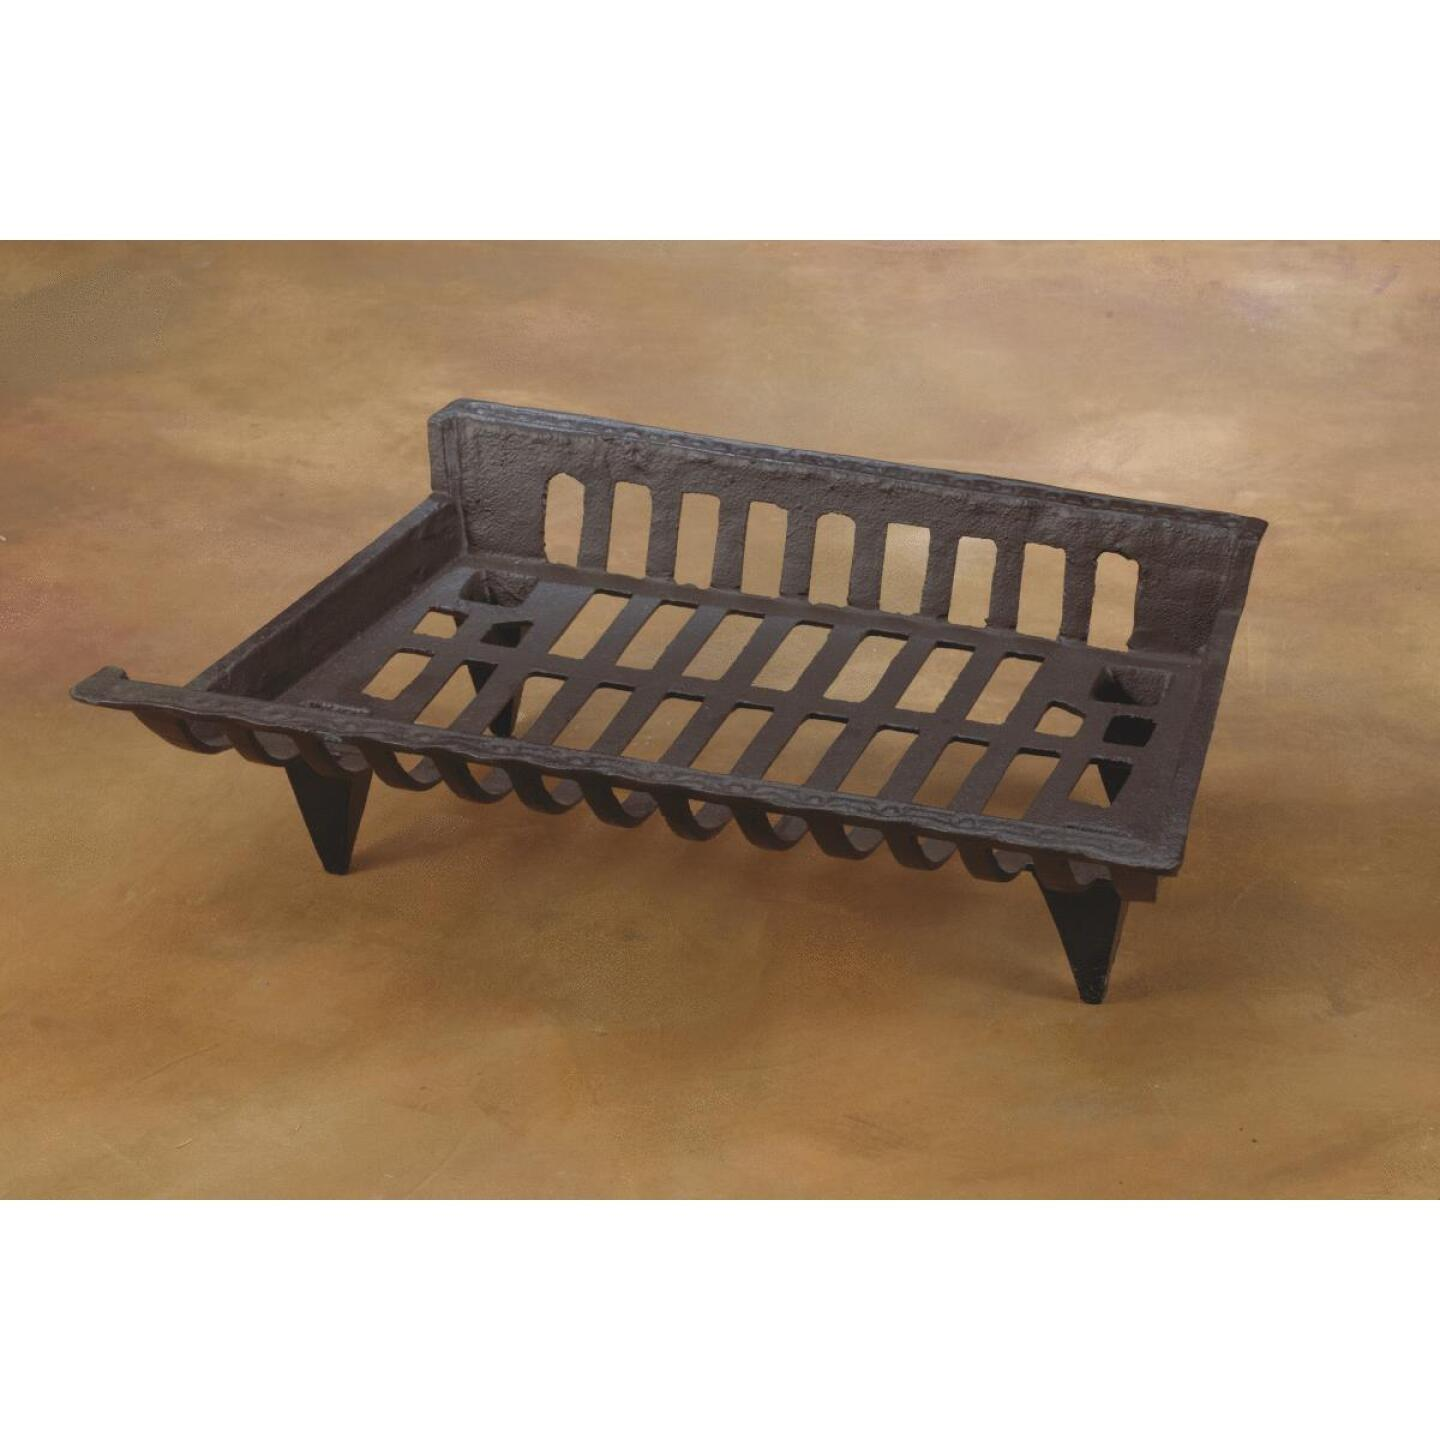 Home Impressions 24 In. Cast Iron Fireplace Grate Image 3